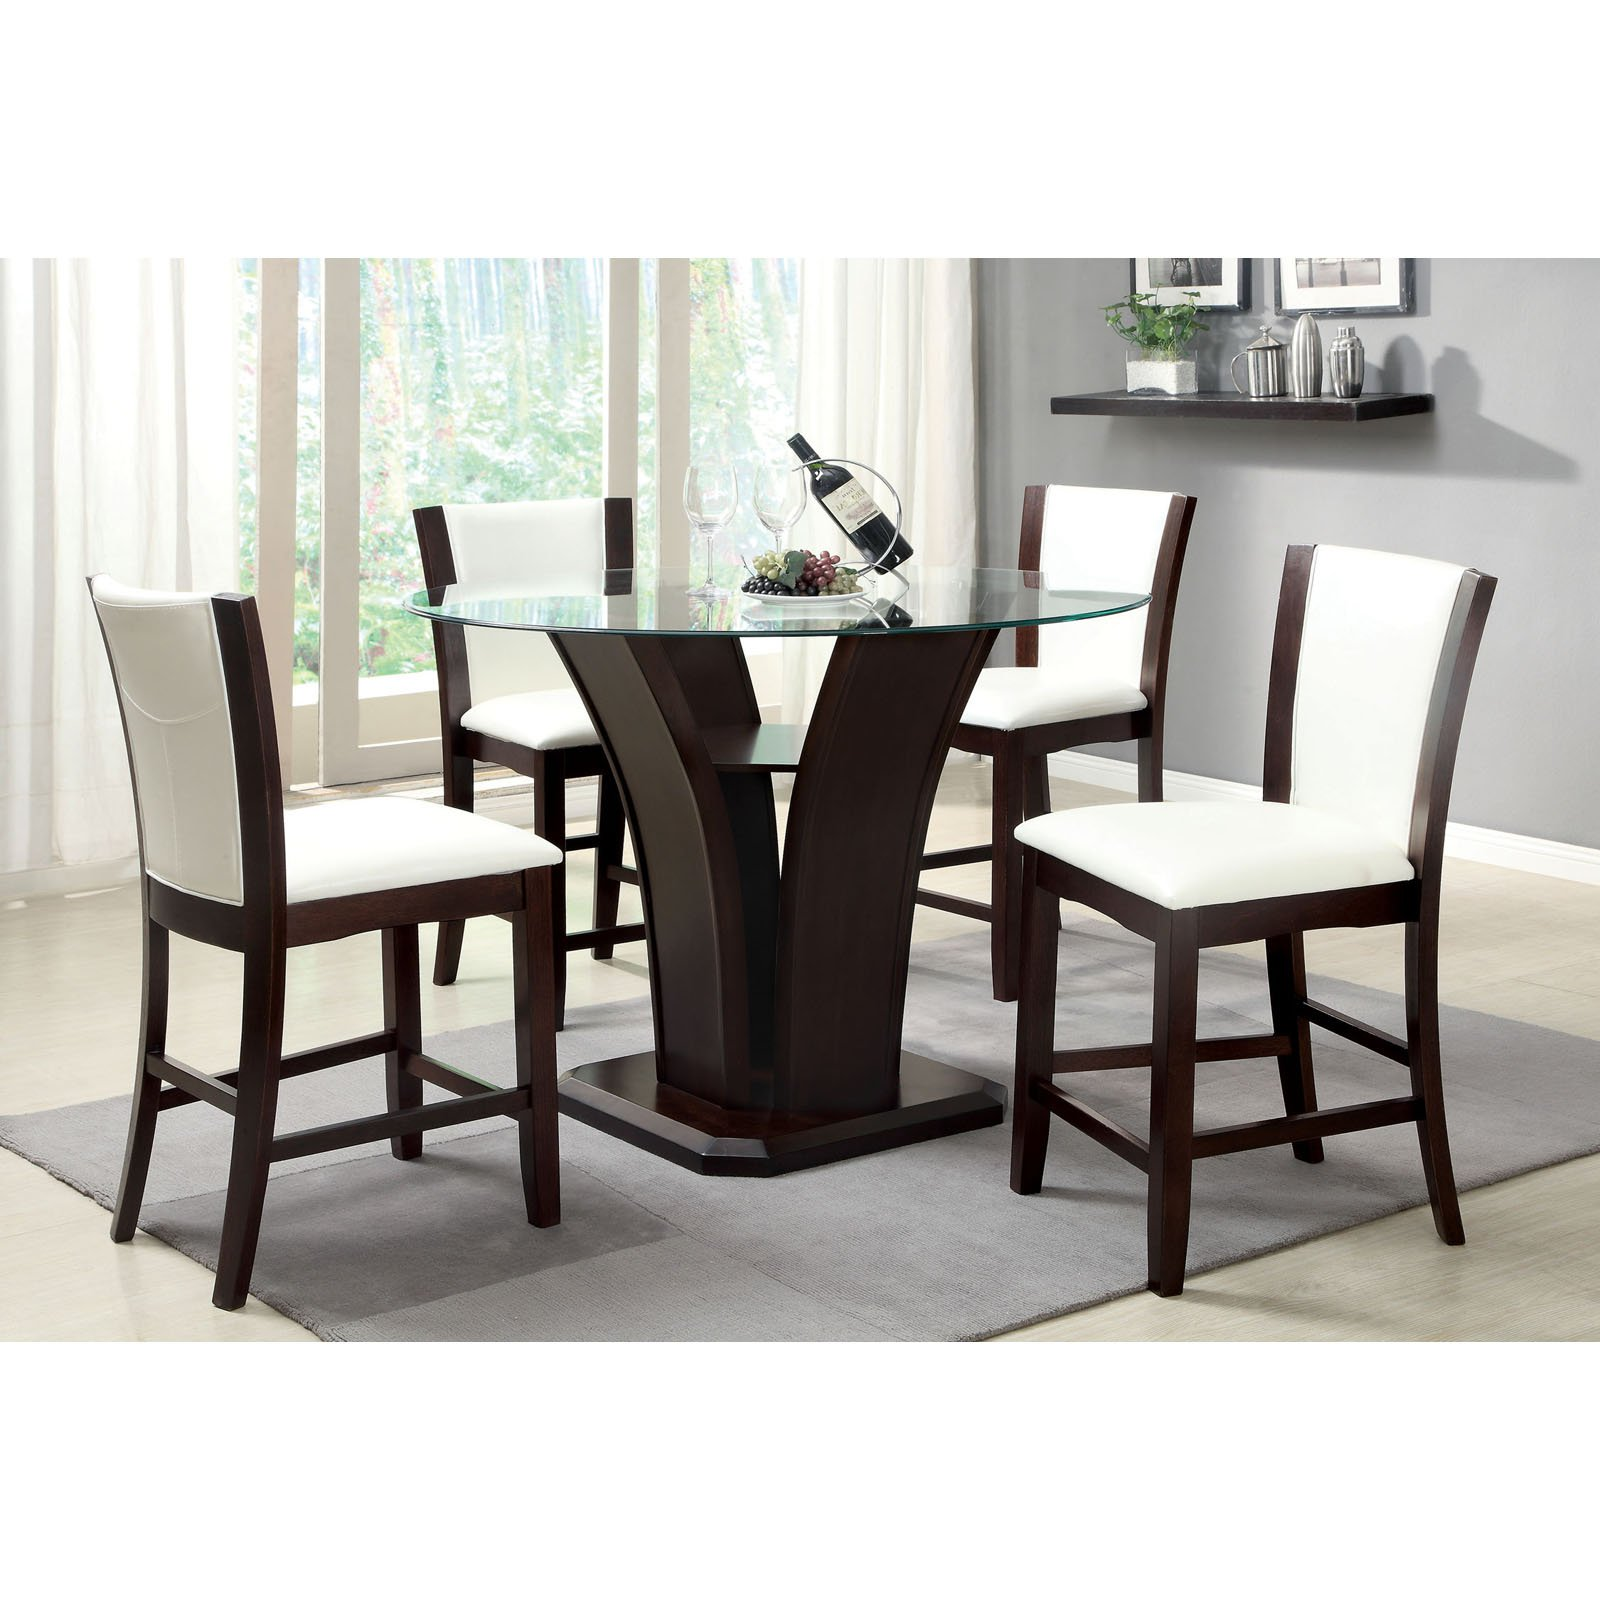 Furniture of America White Lavelle 5 Piece Contemporary Counter Height Glasstop Table Set